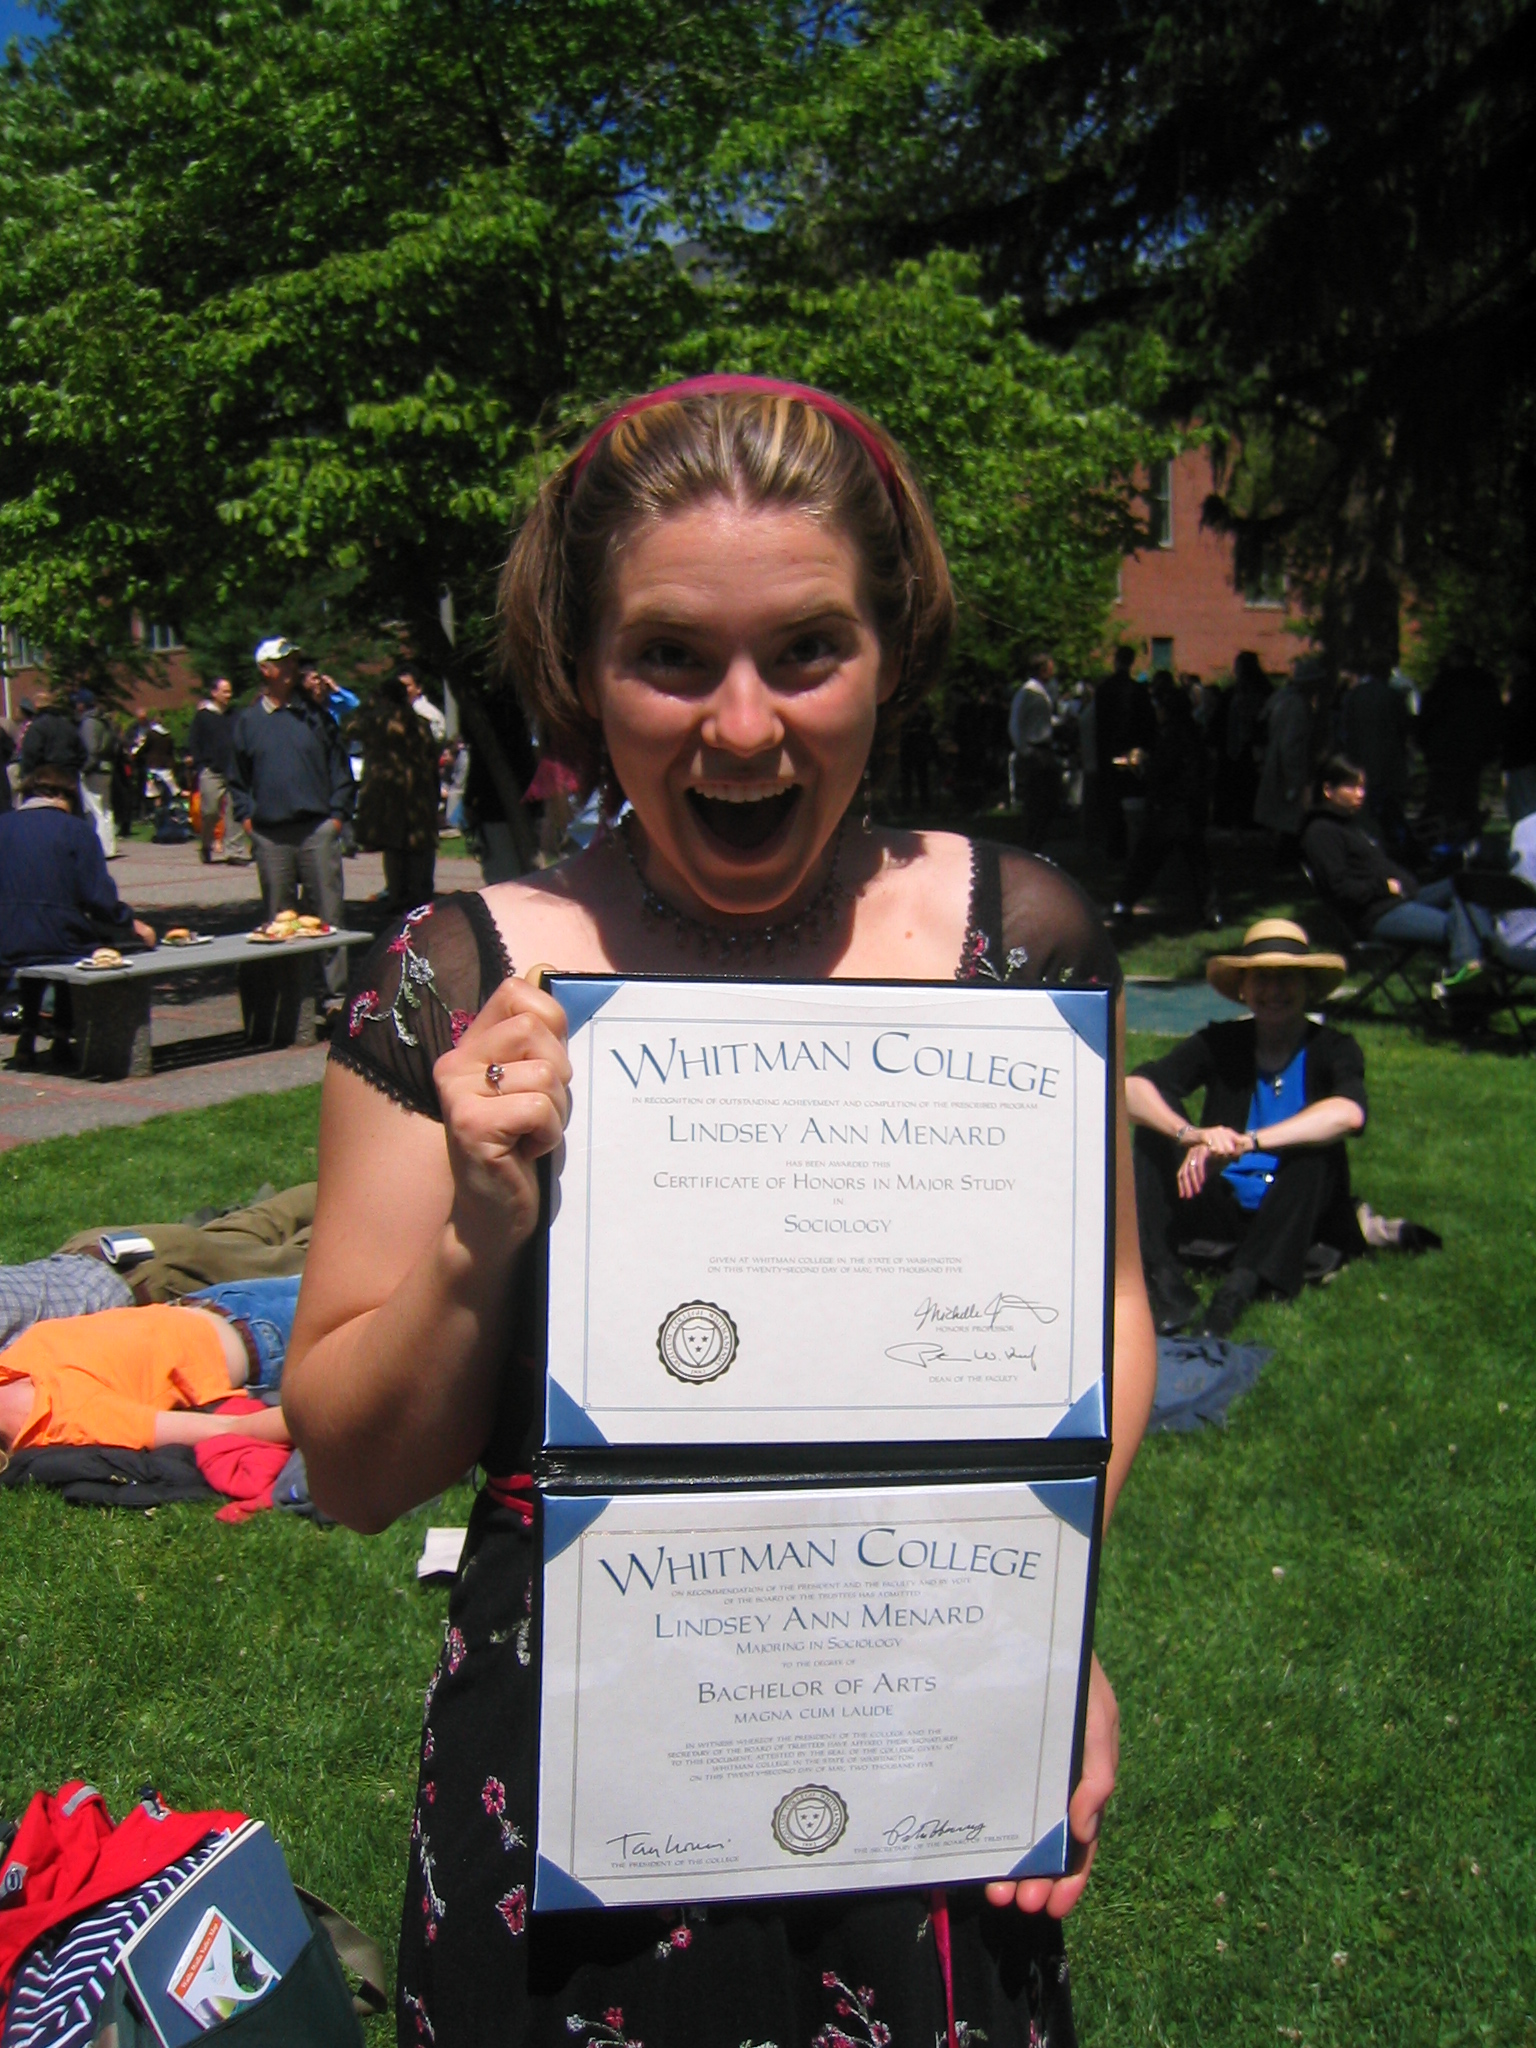 graduating from Whitman was so exciting